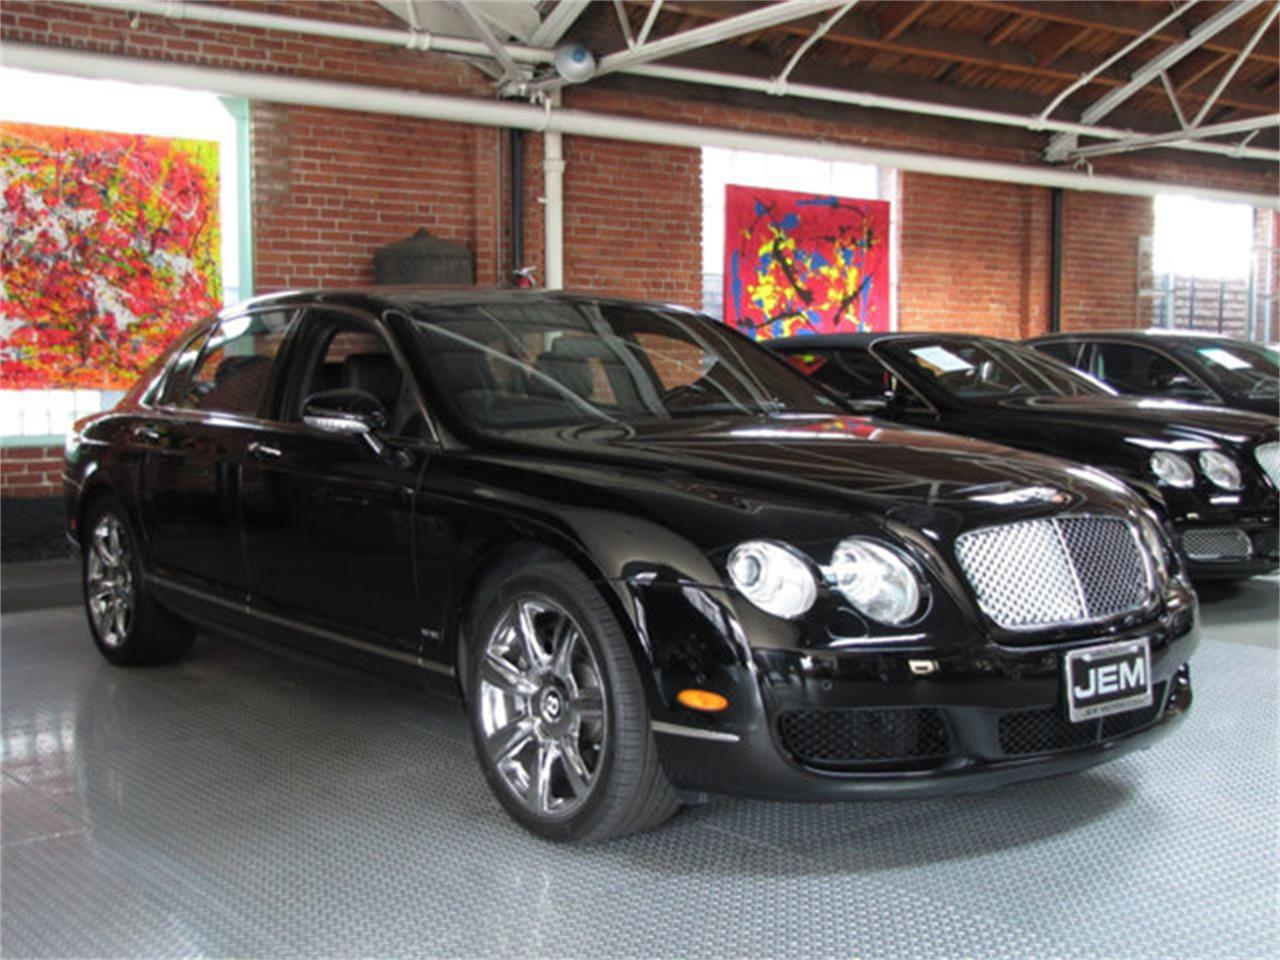 2006 Bentley Continental Flying Spur for sale in Hollywood, CA – photo 2